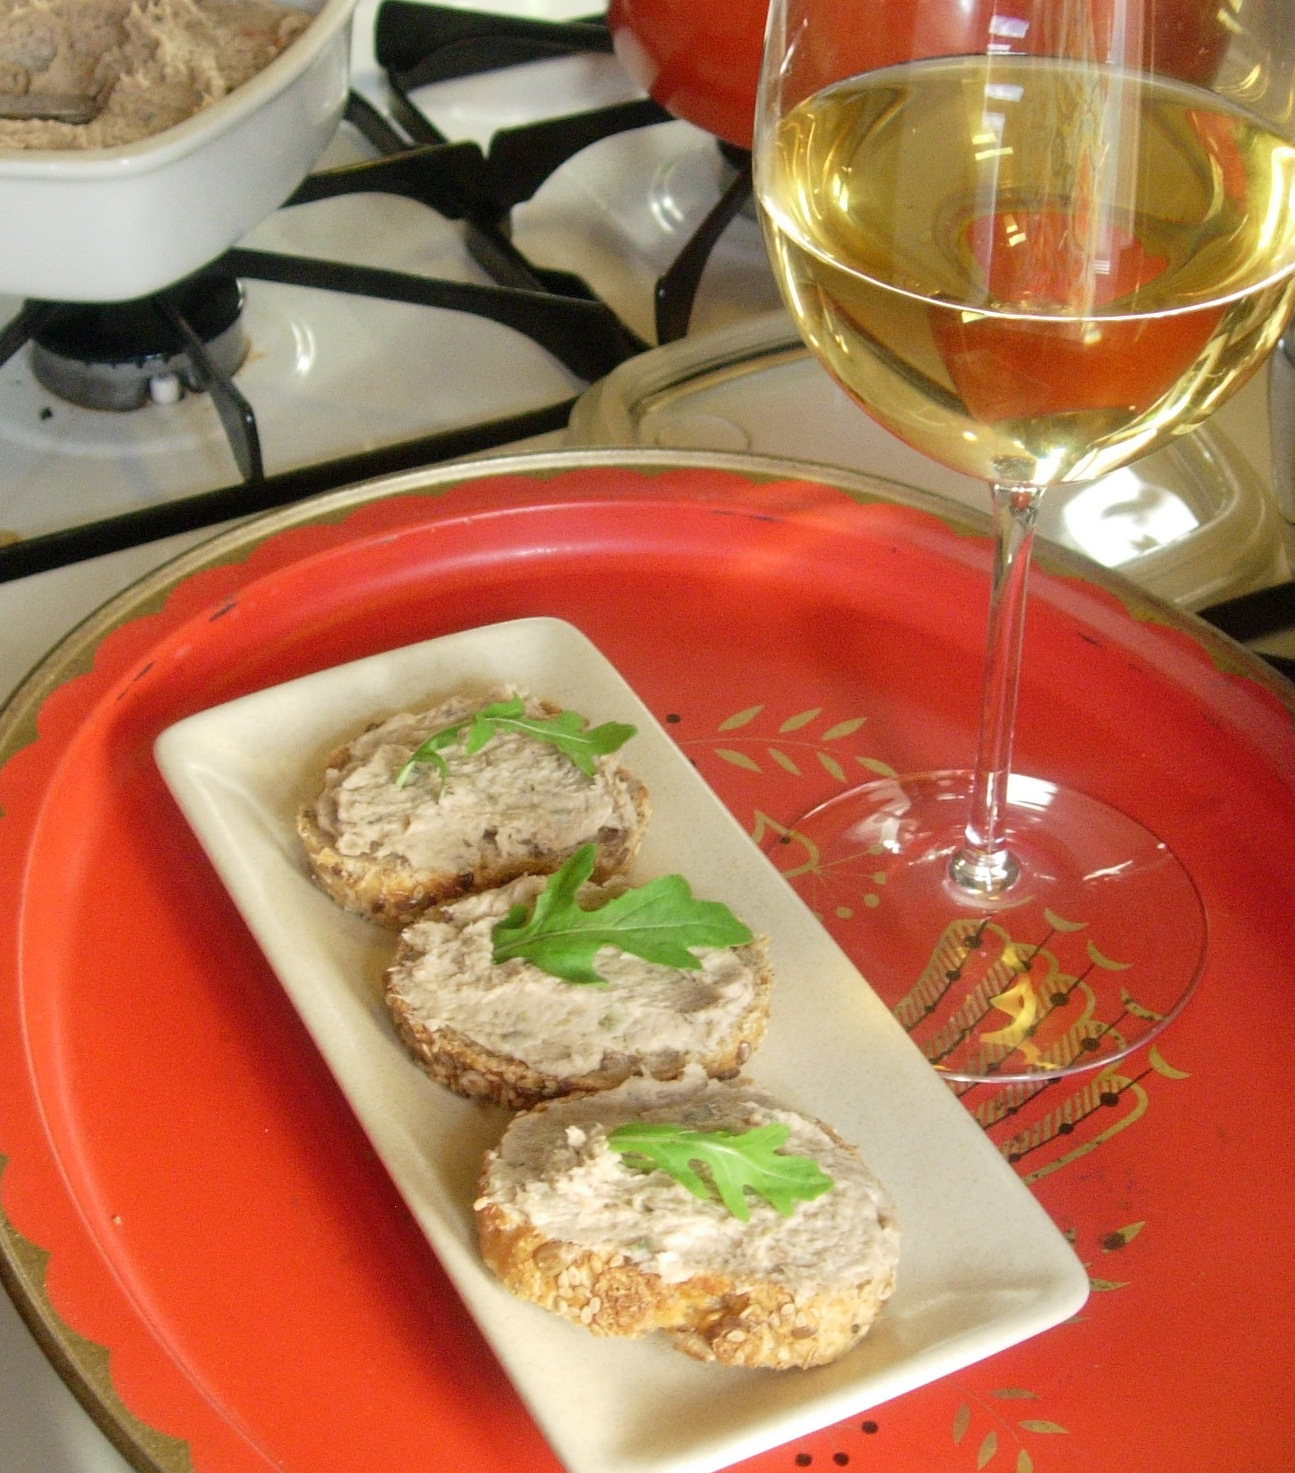 Party in my Pantry: Nantucket-style Smoked Bluefish Pate